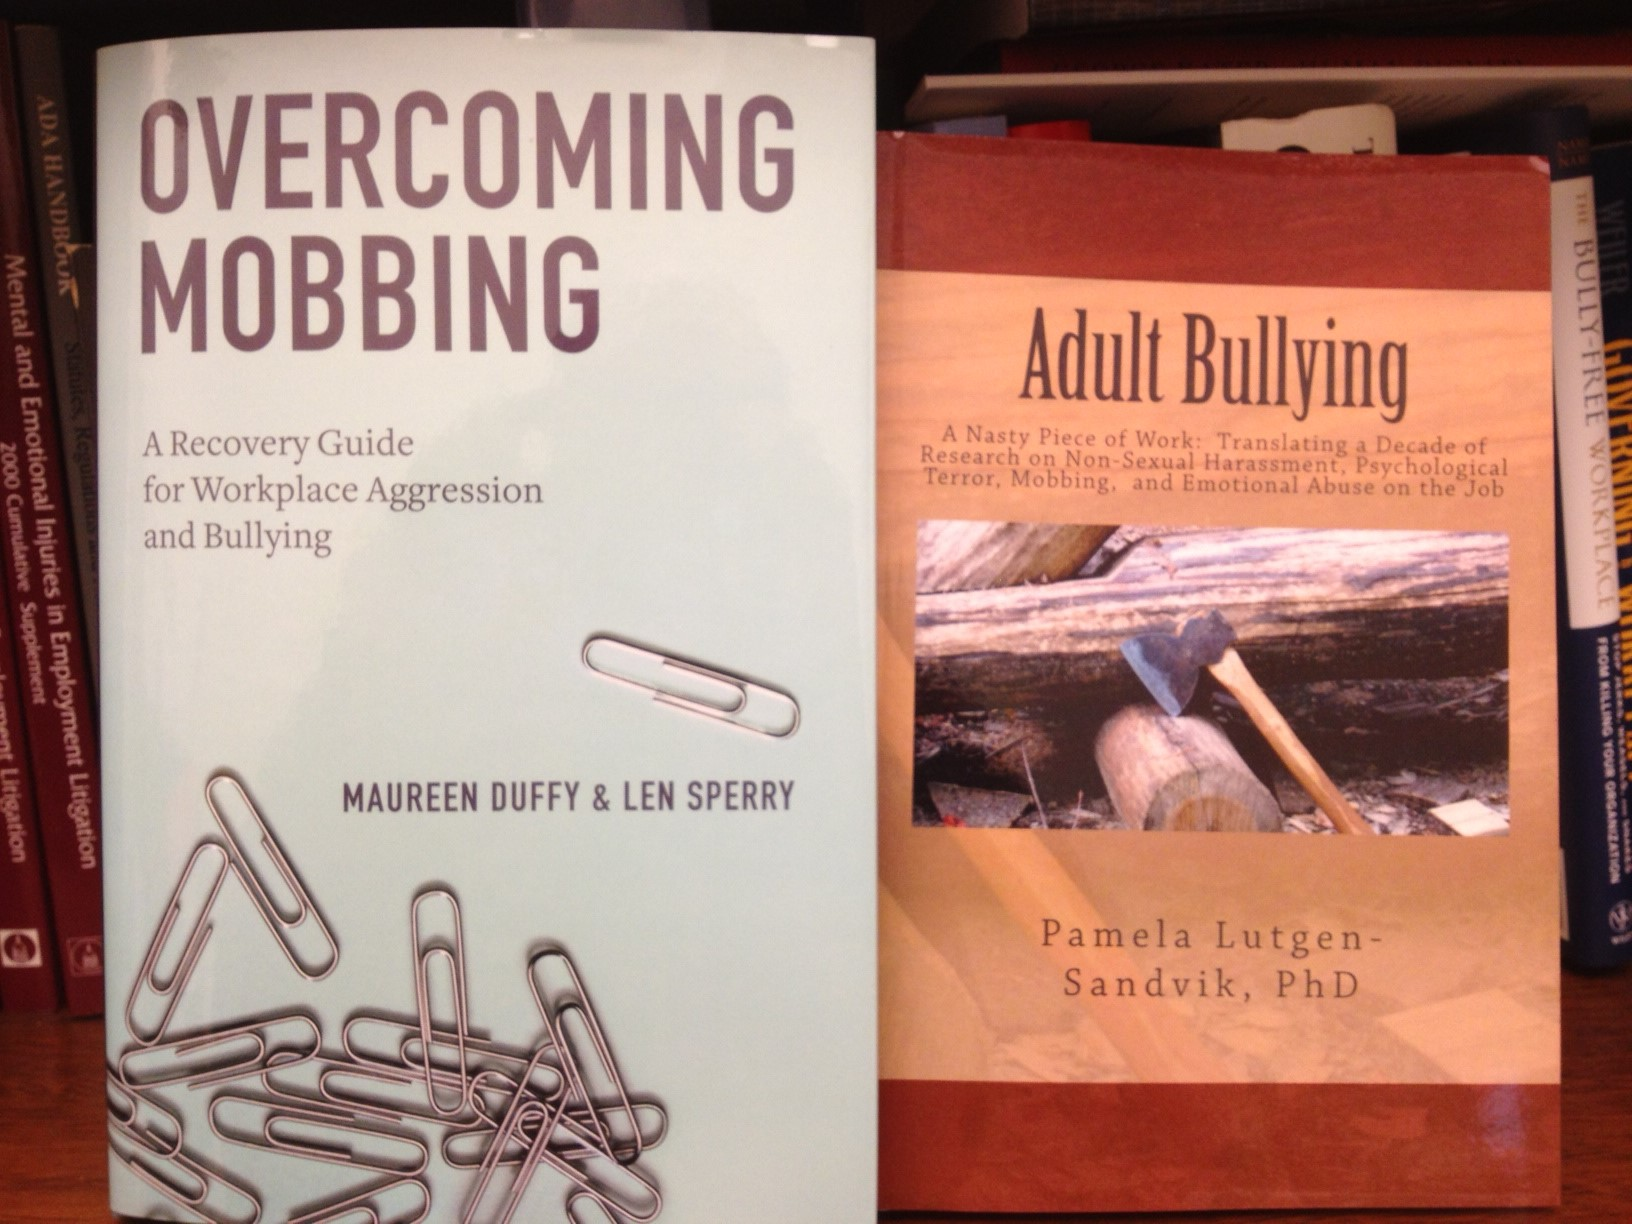 workplace bullying mobbing The bullying of academics follows a pattern of horrendous, orwellian elimination rituals, often hidden from the public despite the anti-bullying policies.